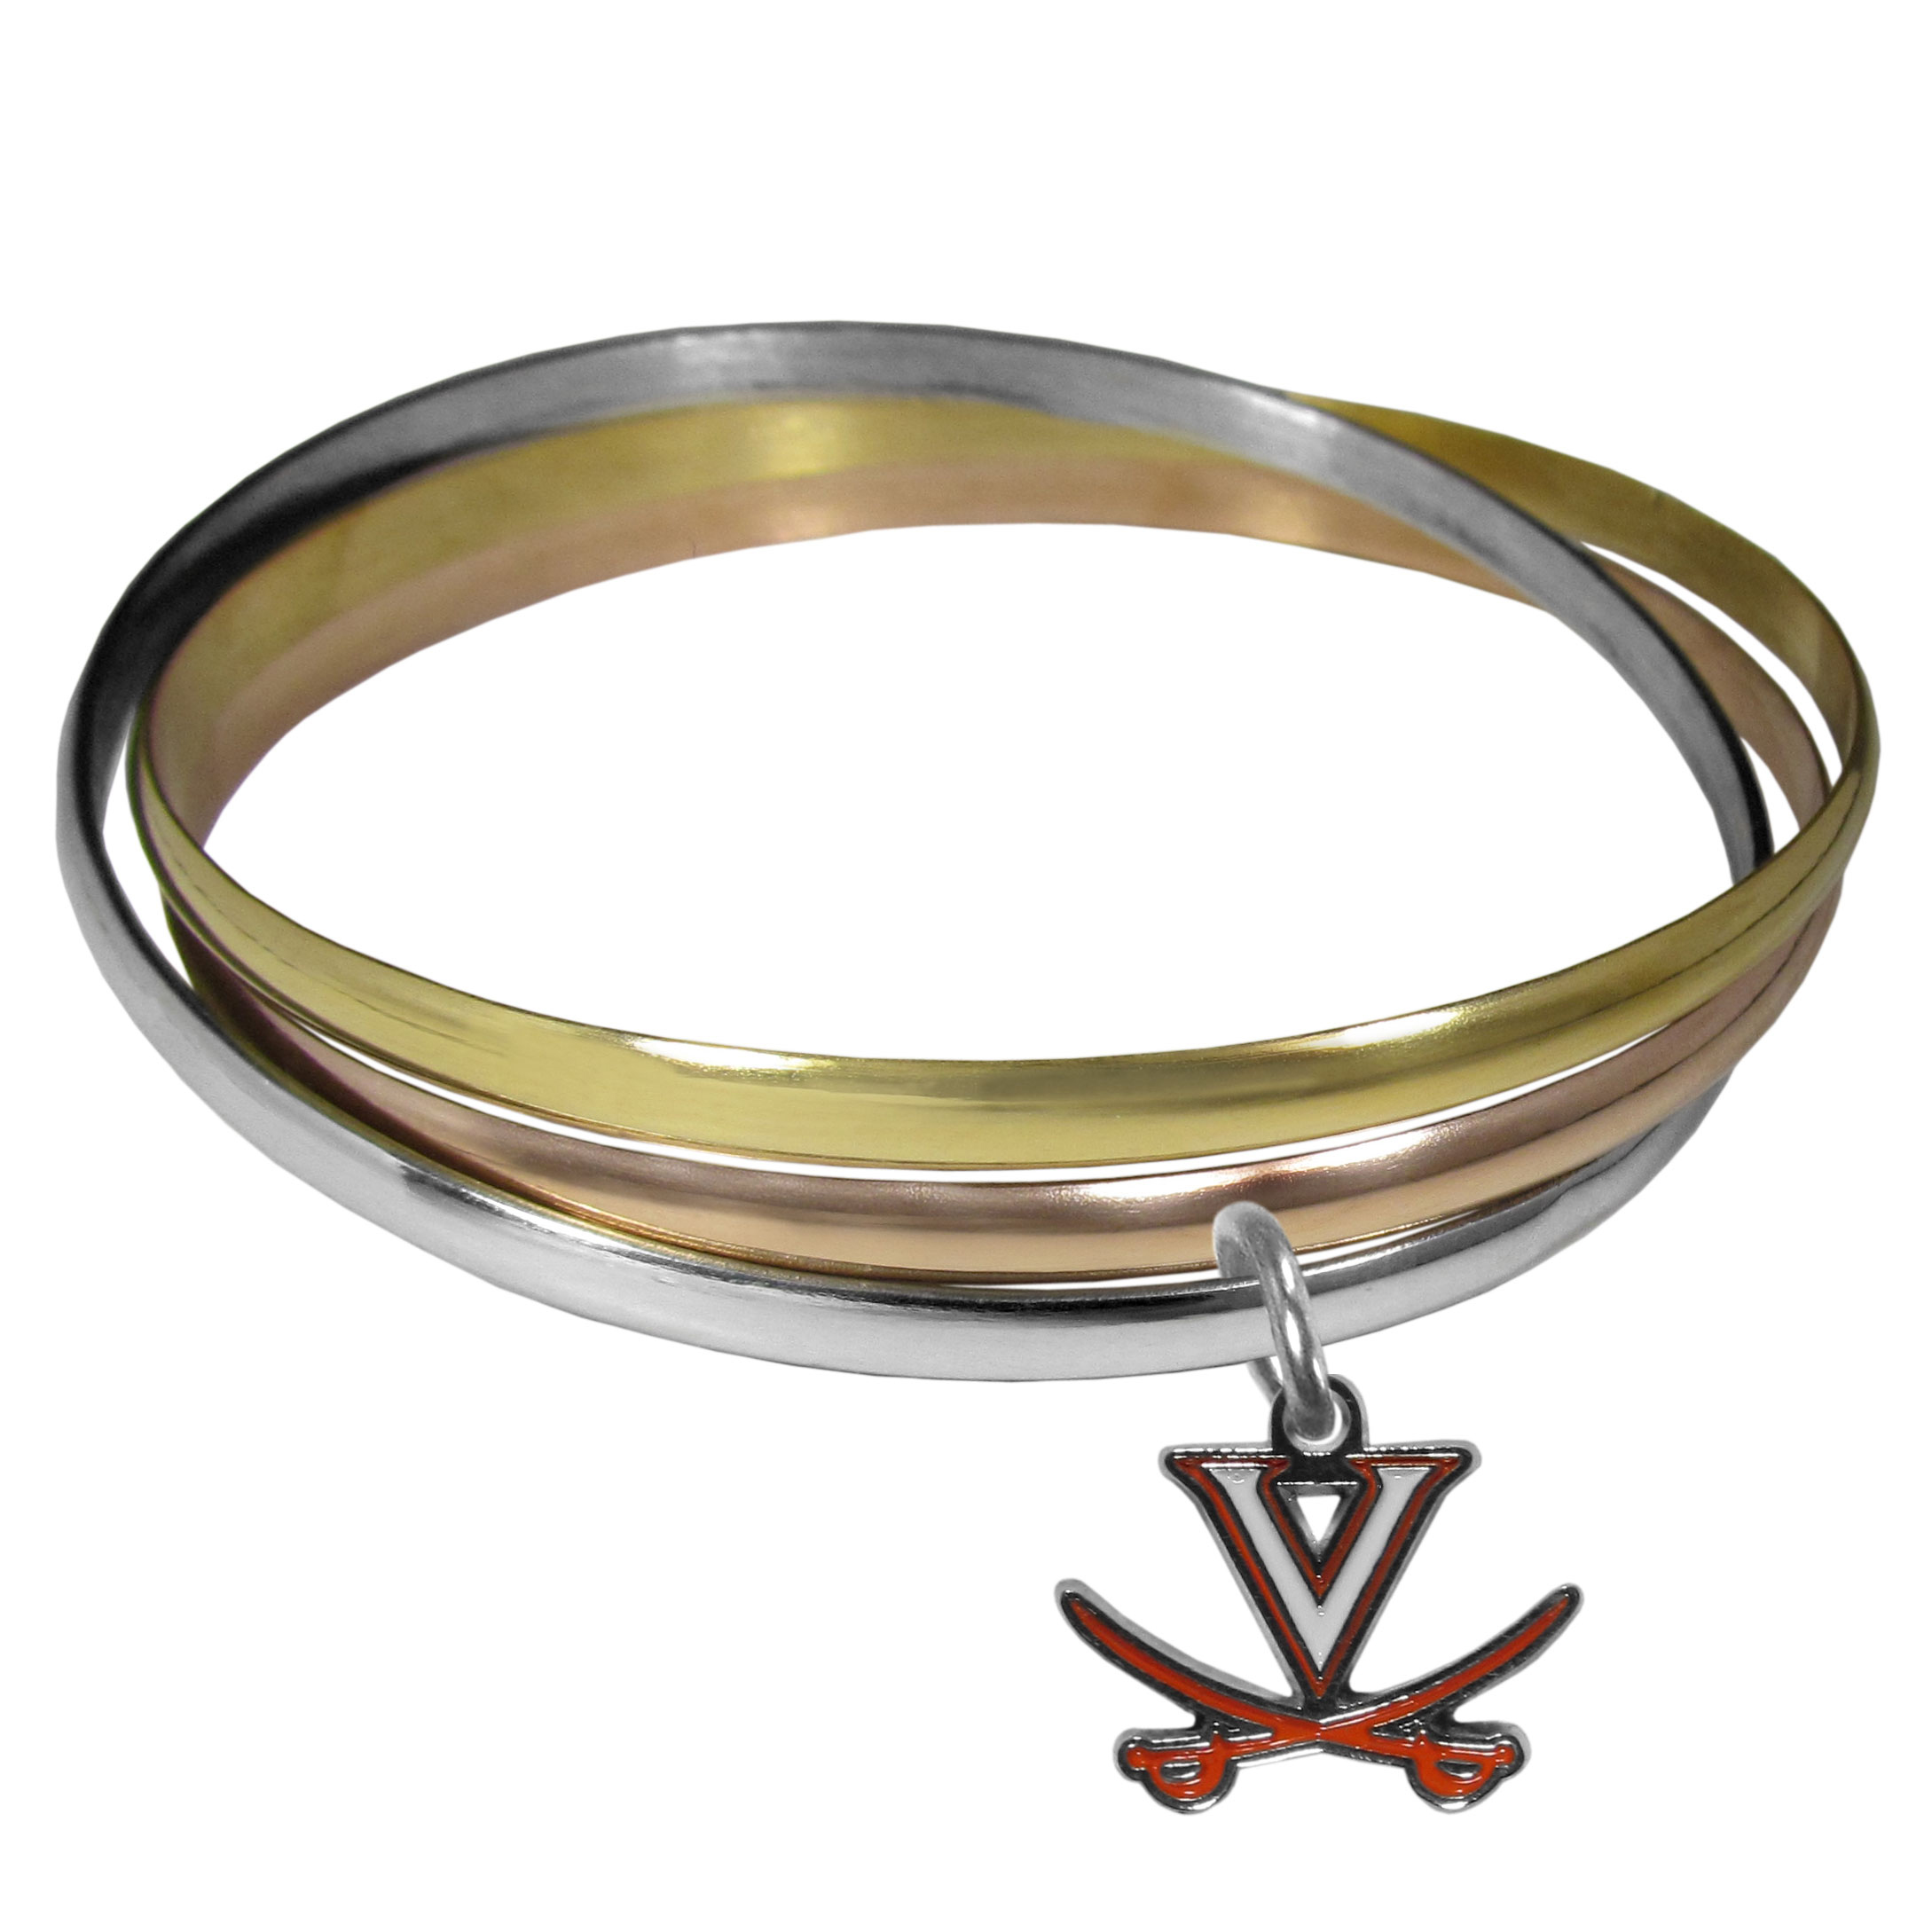 Virginia Cavaliers Tri-color Bangle Bracelet - These beautiful bangles come in a interlocking style and feature a fully cast Virginia Cavaliers charm with enameled team colors. The bracelet has a silver toned bangle, gold tone bangle and brass toned bangle.